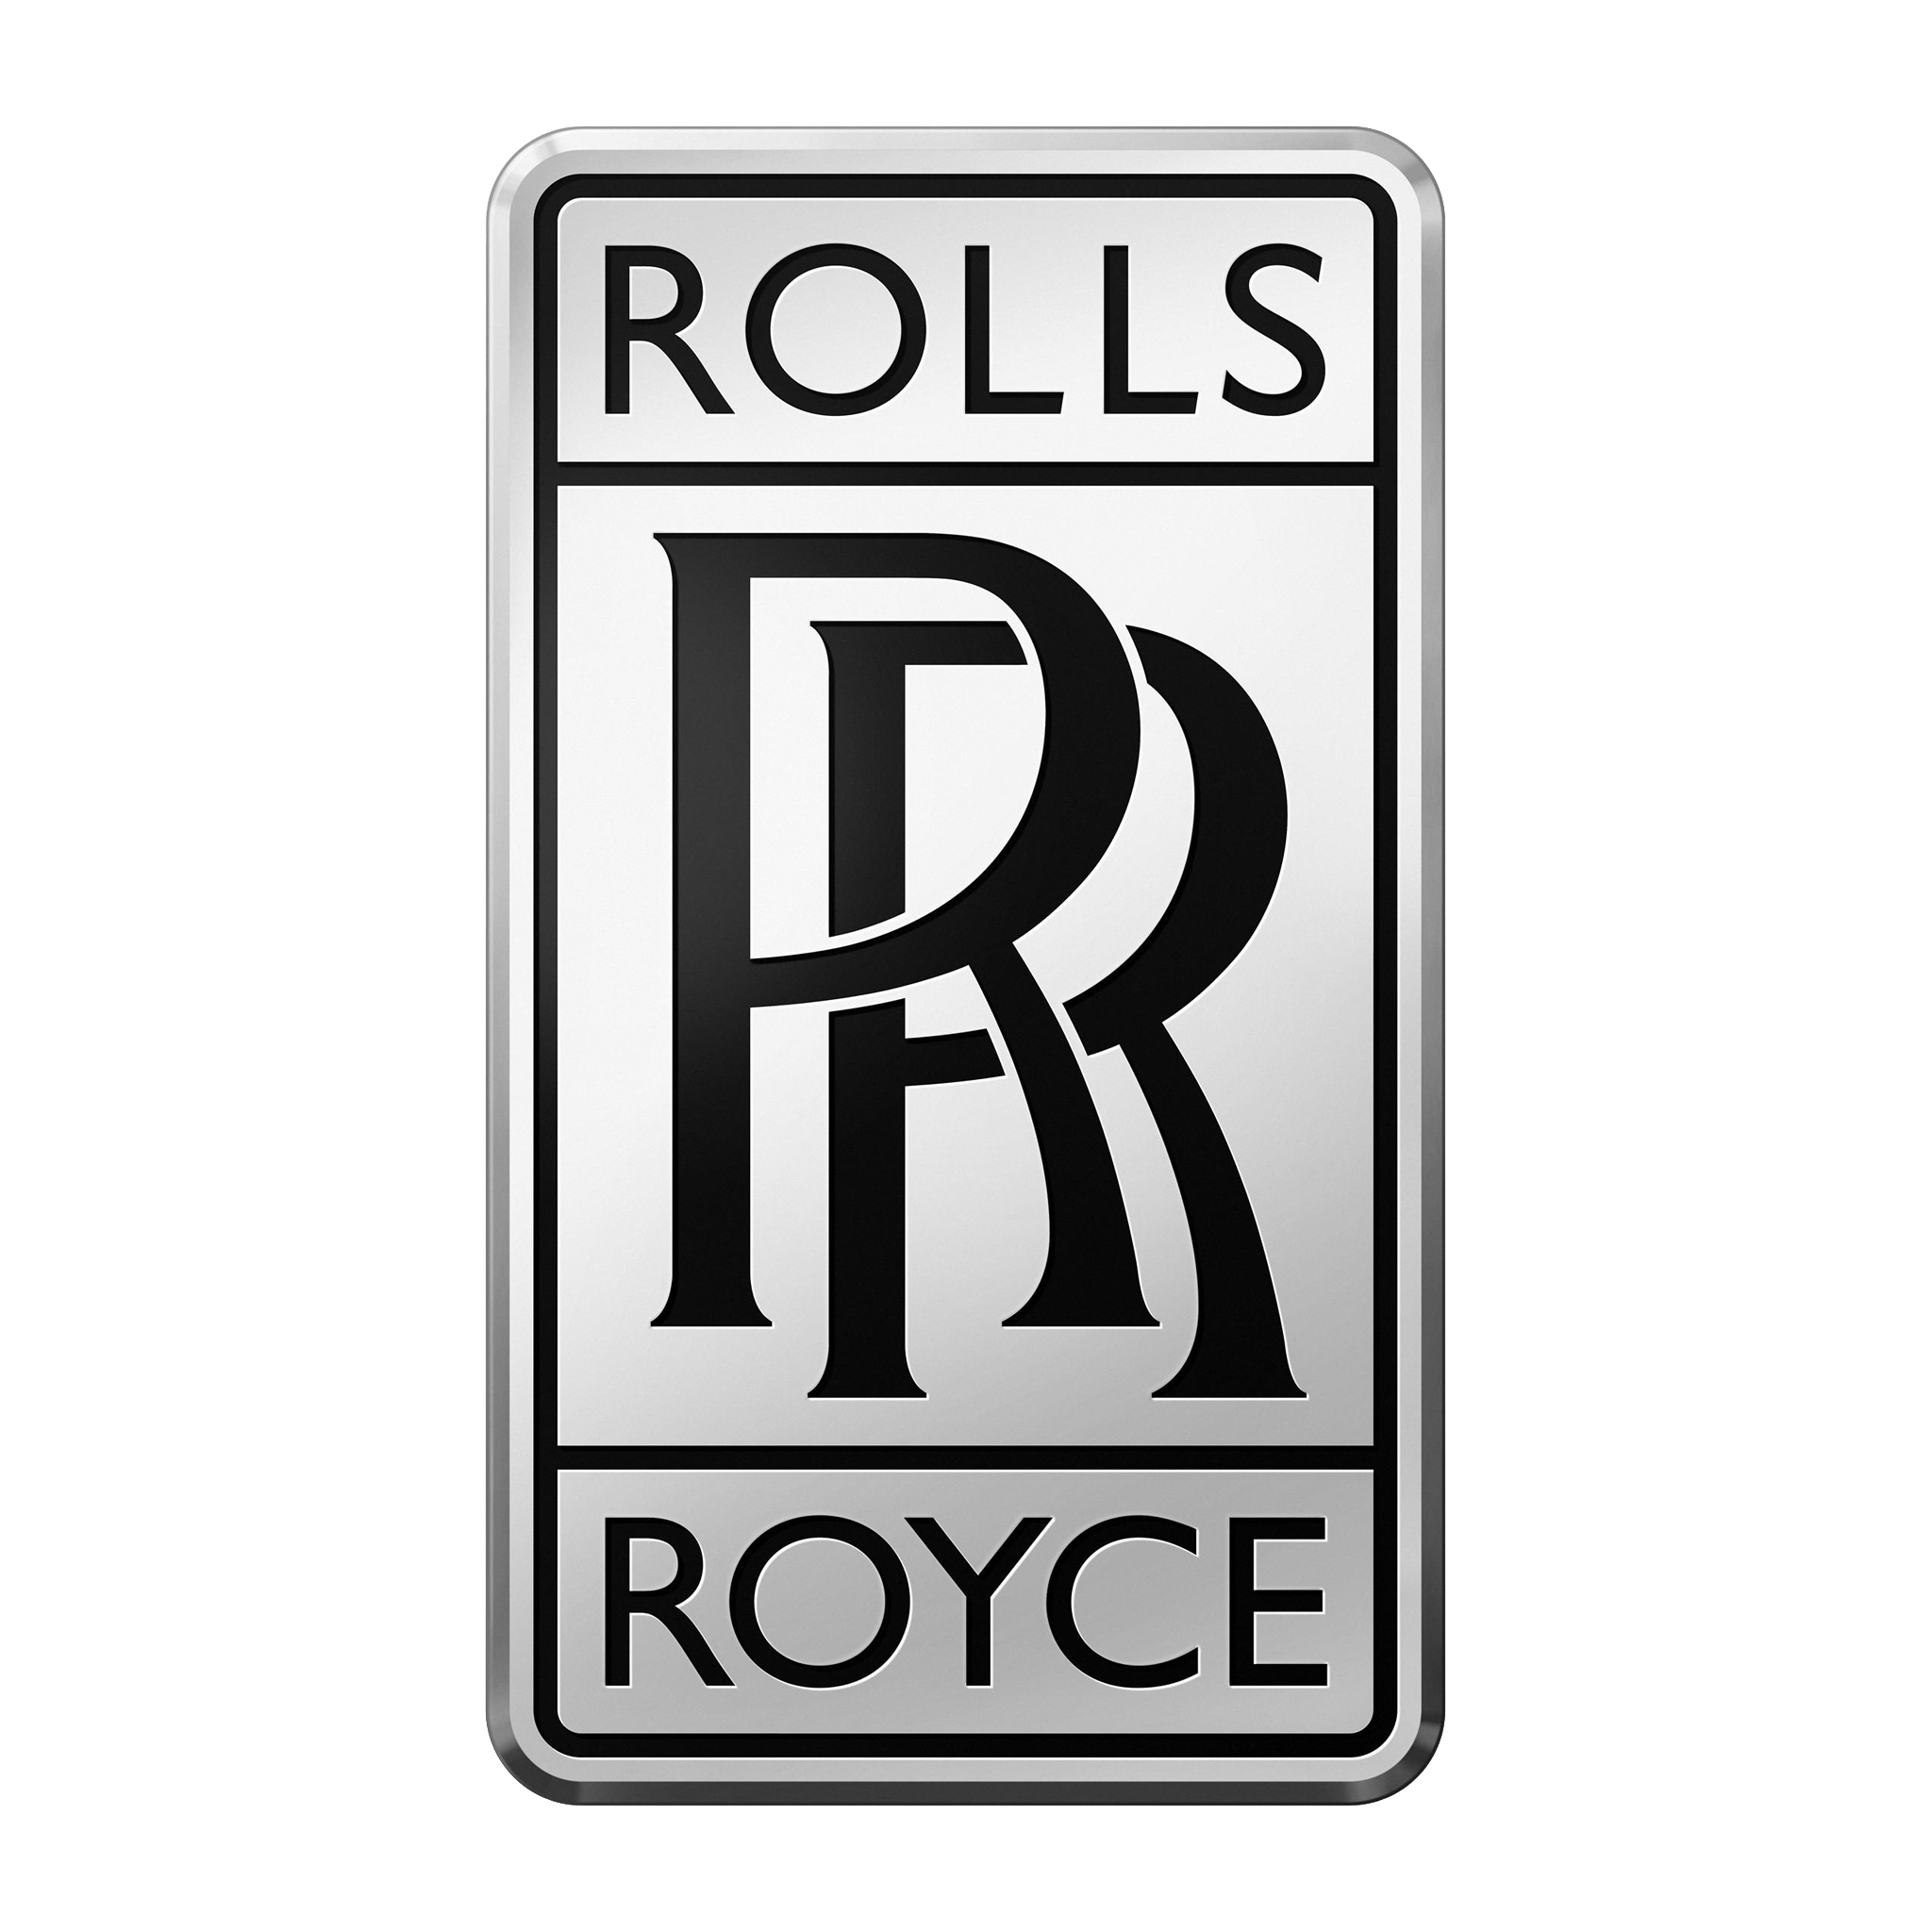 Car And Their Logos >> Car Logo Rolls Royce transparent PNG - StickPNG